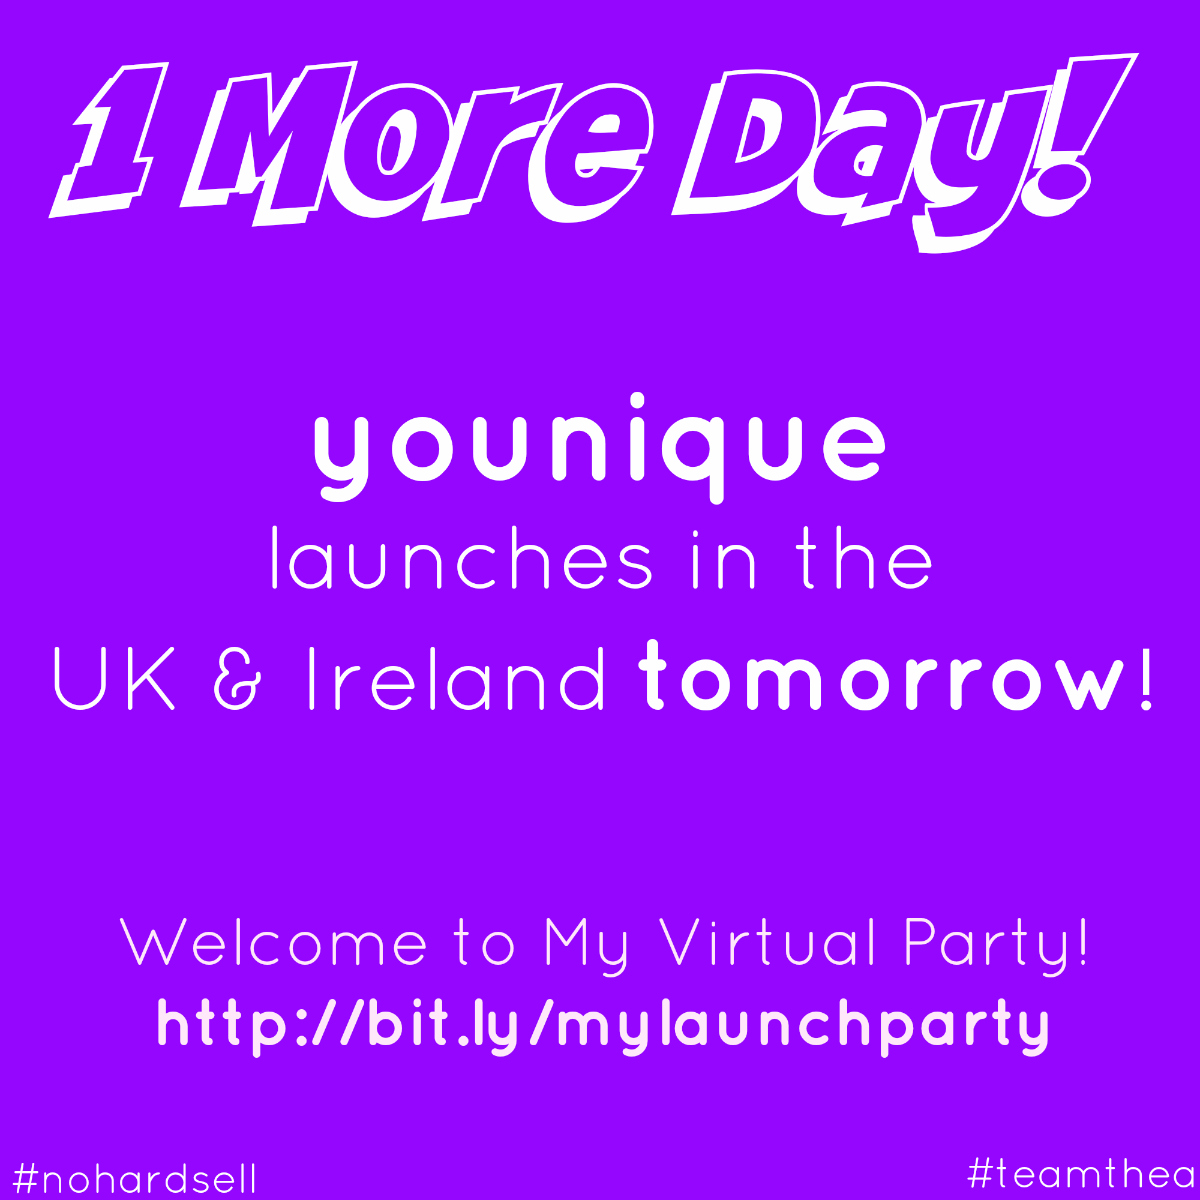 One More Day - Younique UK & Ireland launches #teamthea